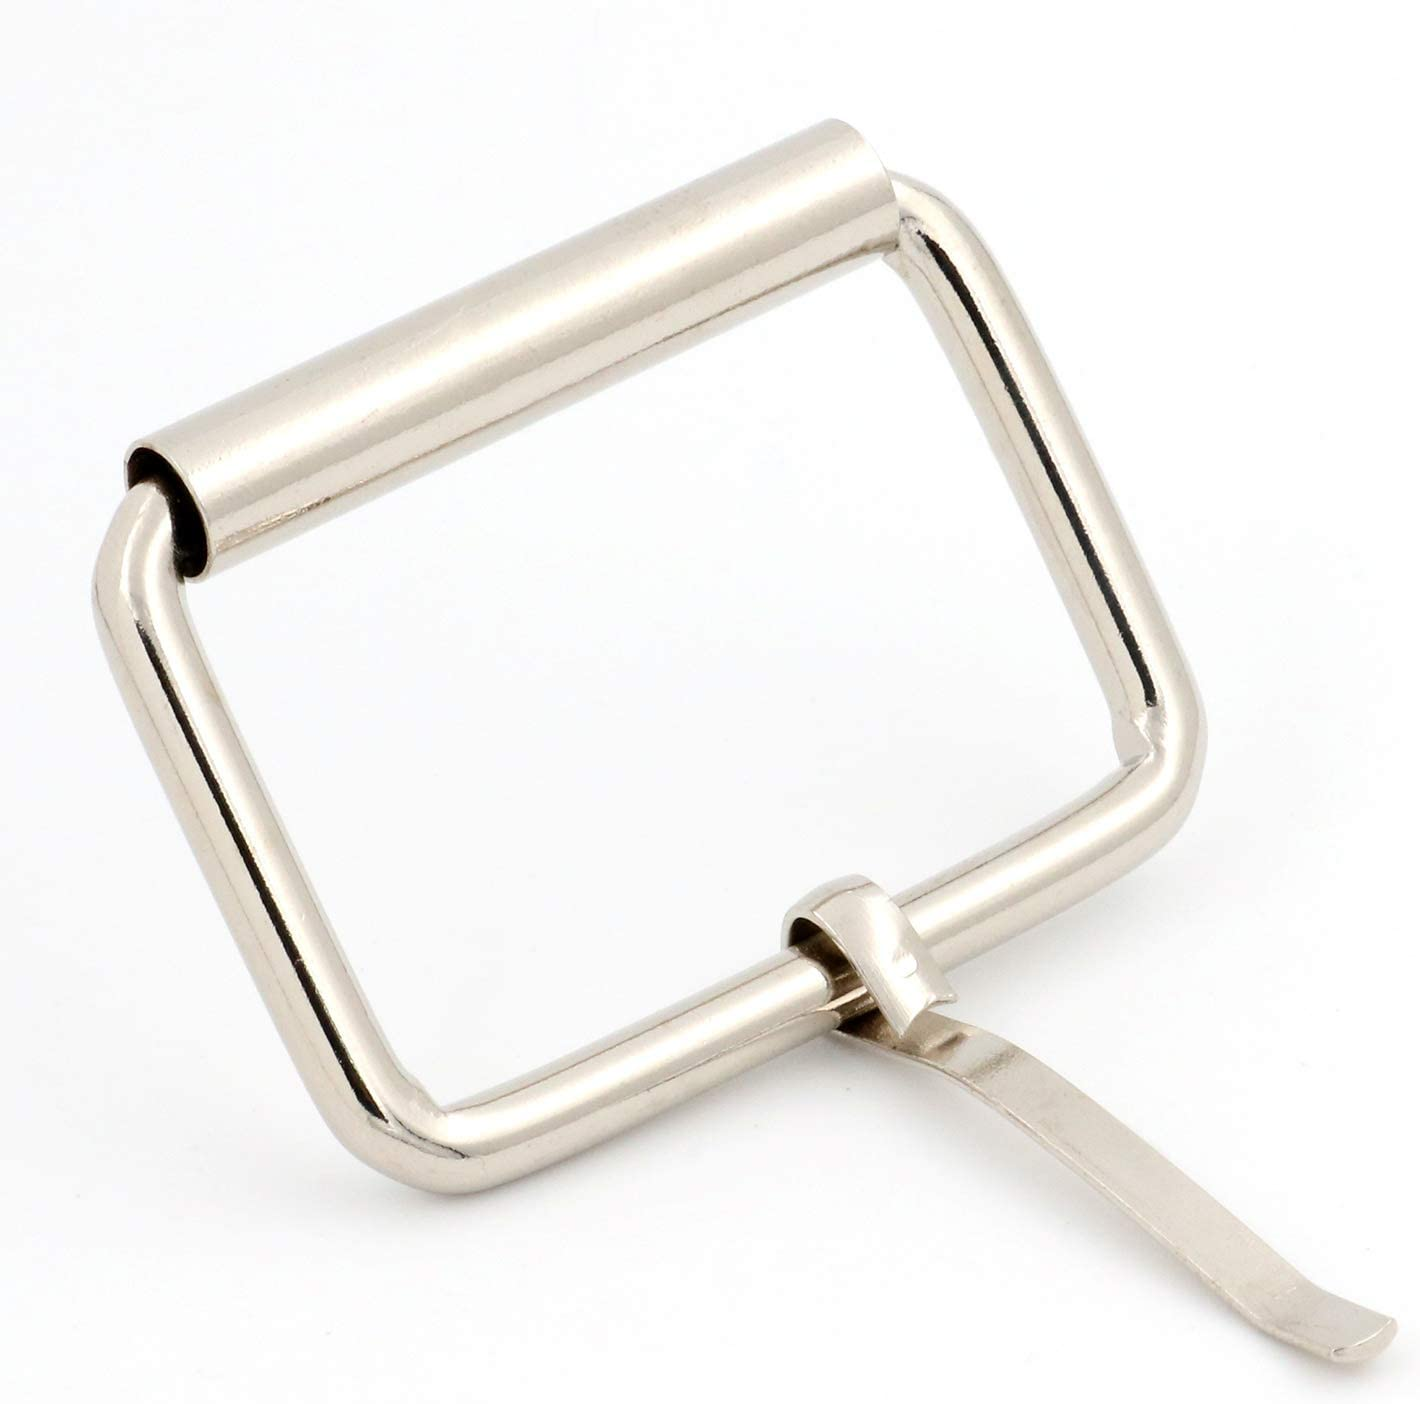 Pack of 10 and Belt Straps Collars Silver BIKICOCO 1-1//2 x 1 Roller Pin Belt Buckles Non Welded for Bags Shoes